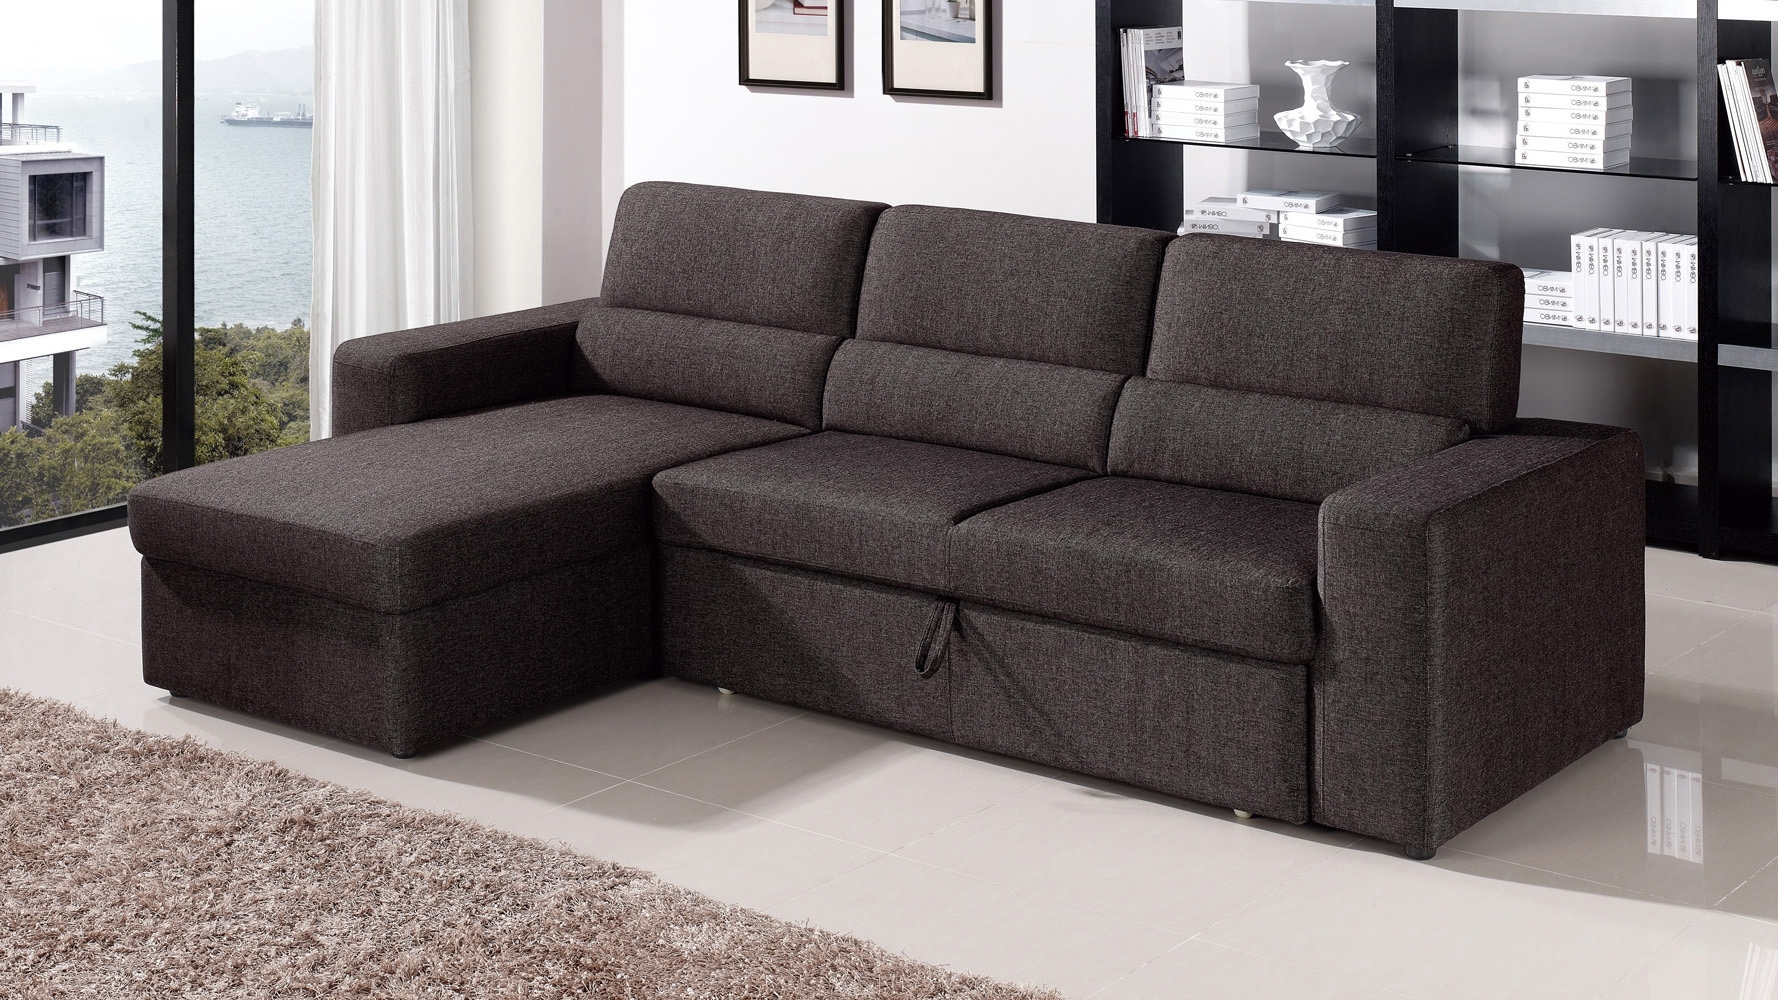 Black/brown Clubber Sleeper Sectional Sofa | Zuri Furniture Throughout Black Sectional Sofas (View 9 of 10)